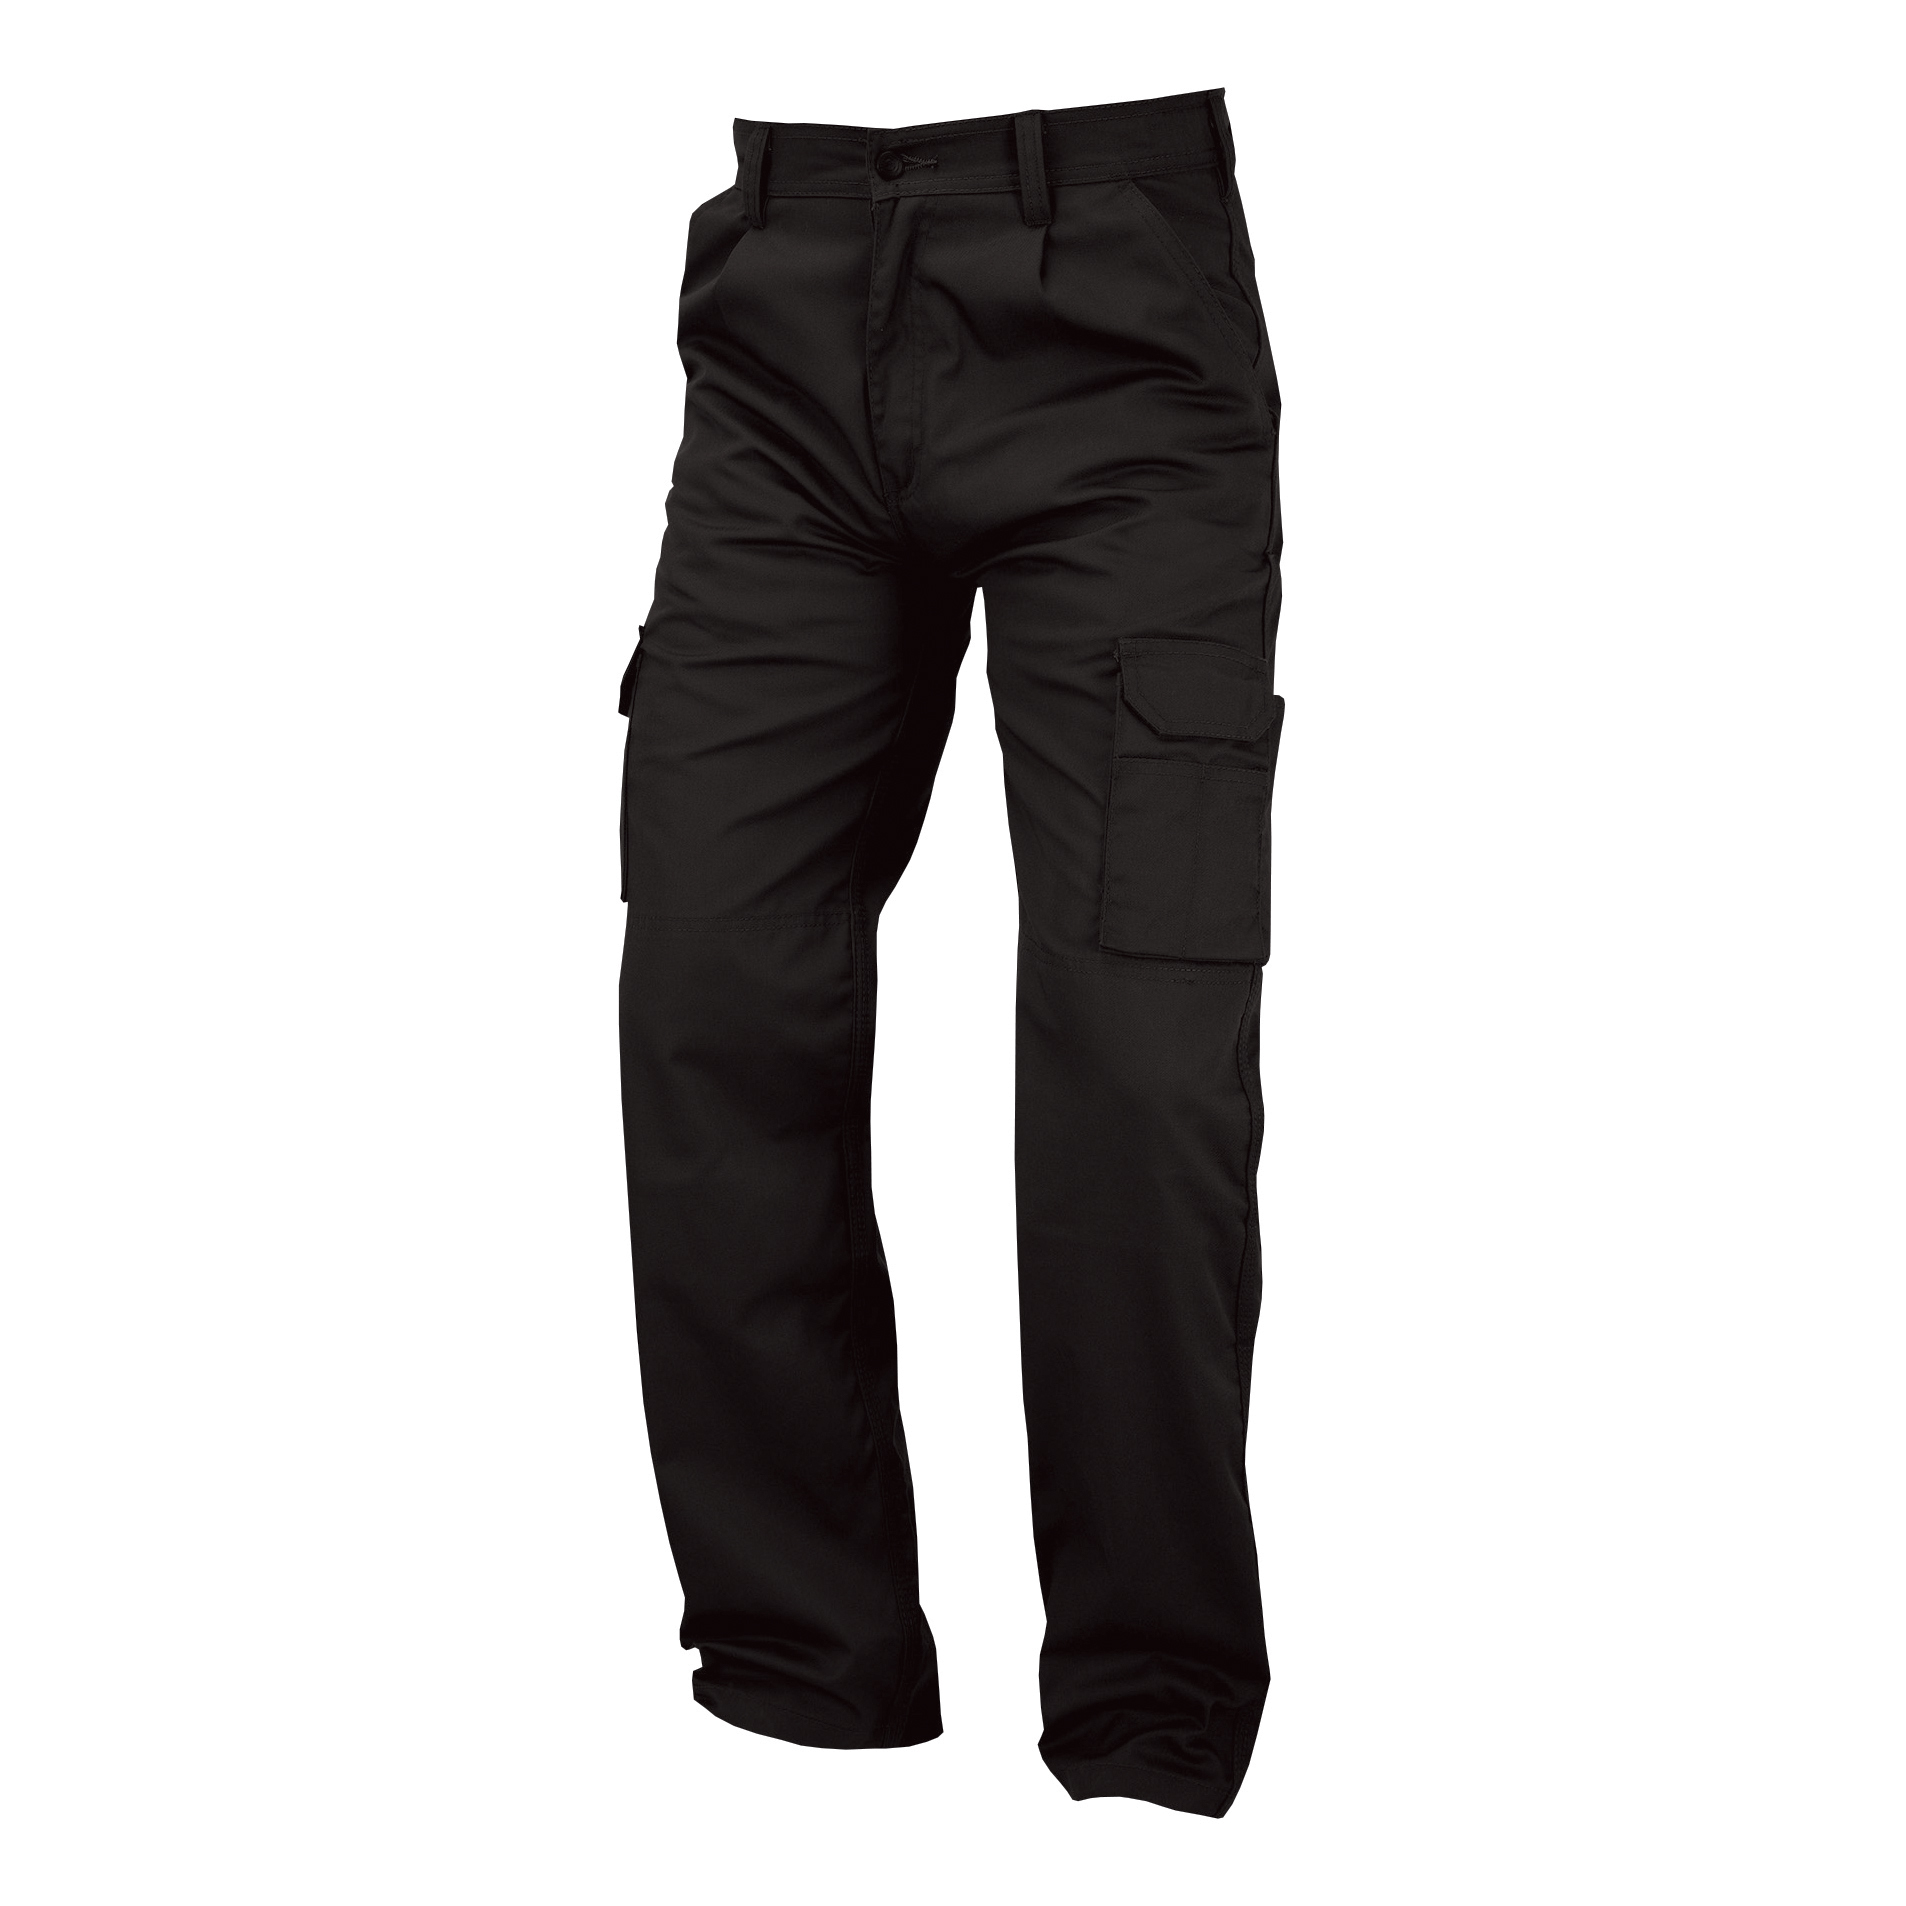 Business Kneepad Combat Trouser Multi-functional Waist 42in Leg 32in Black